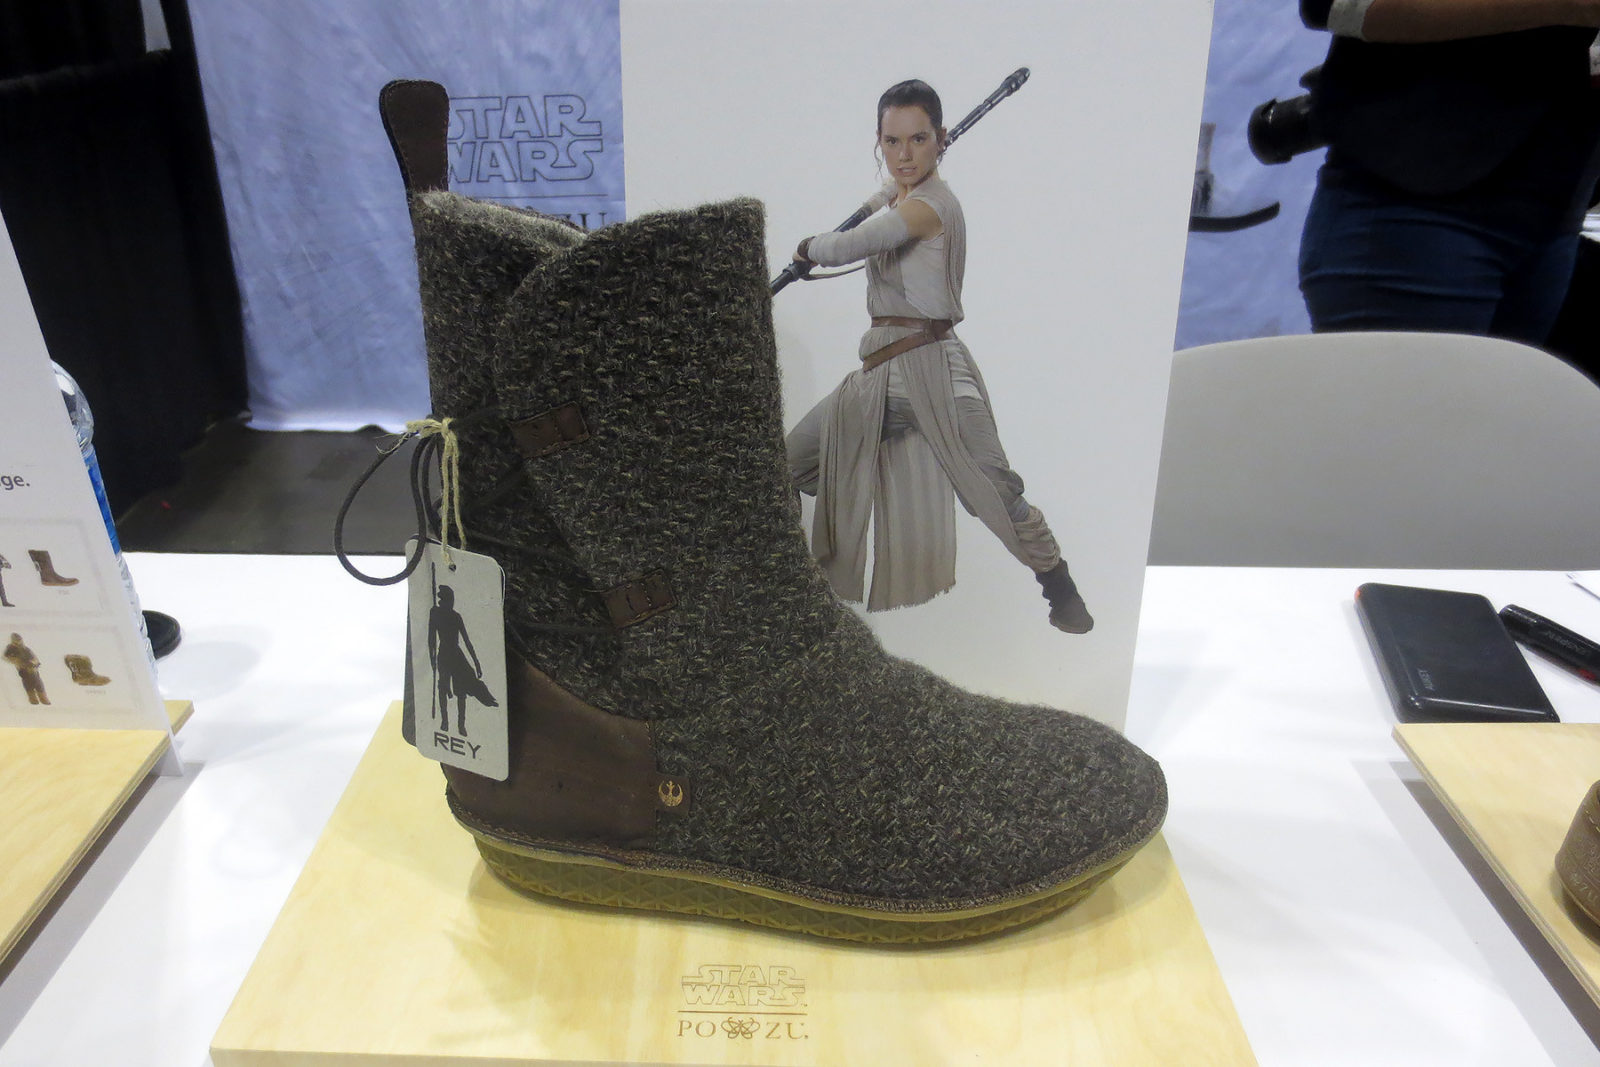 Po-Zu Footwear at Celebration Orlando